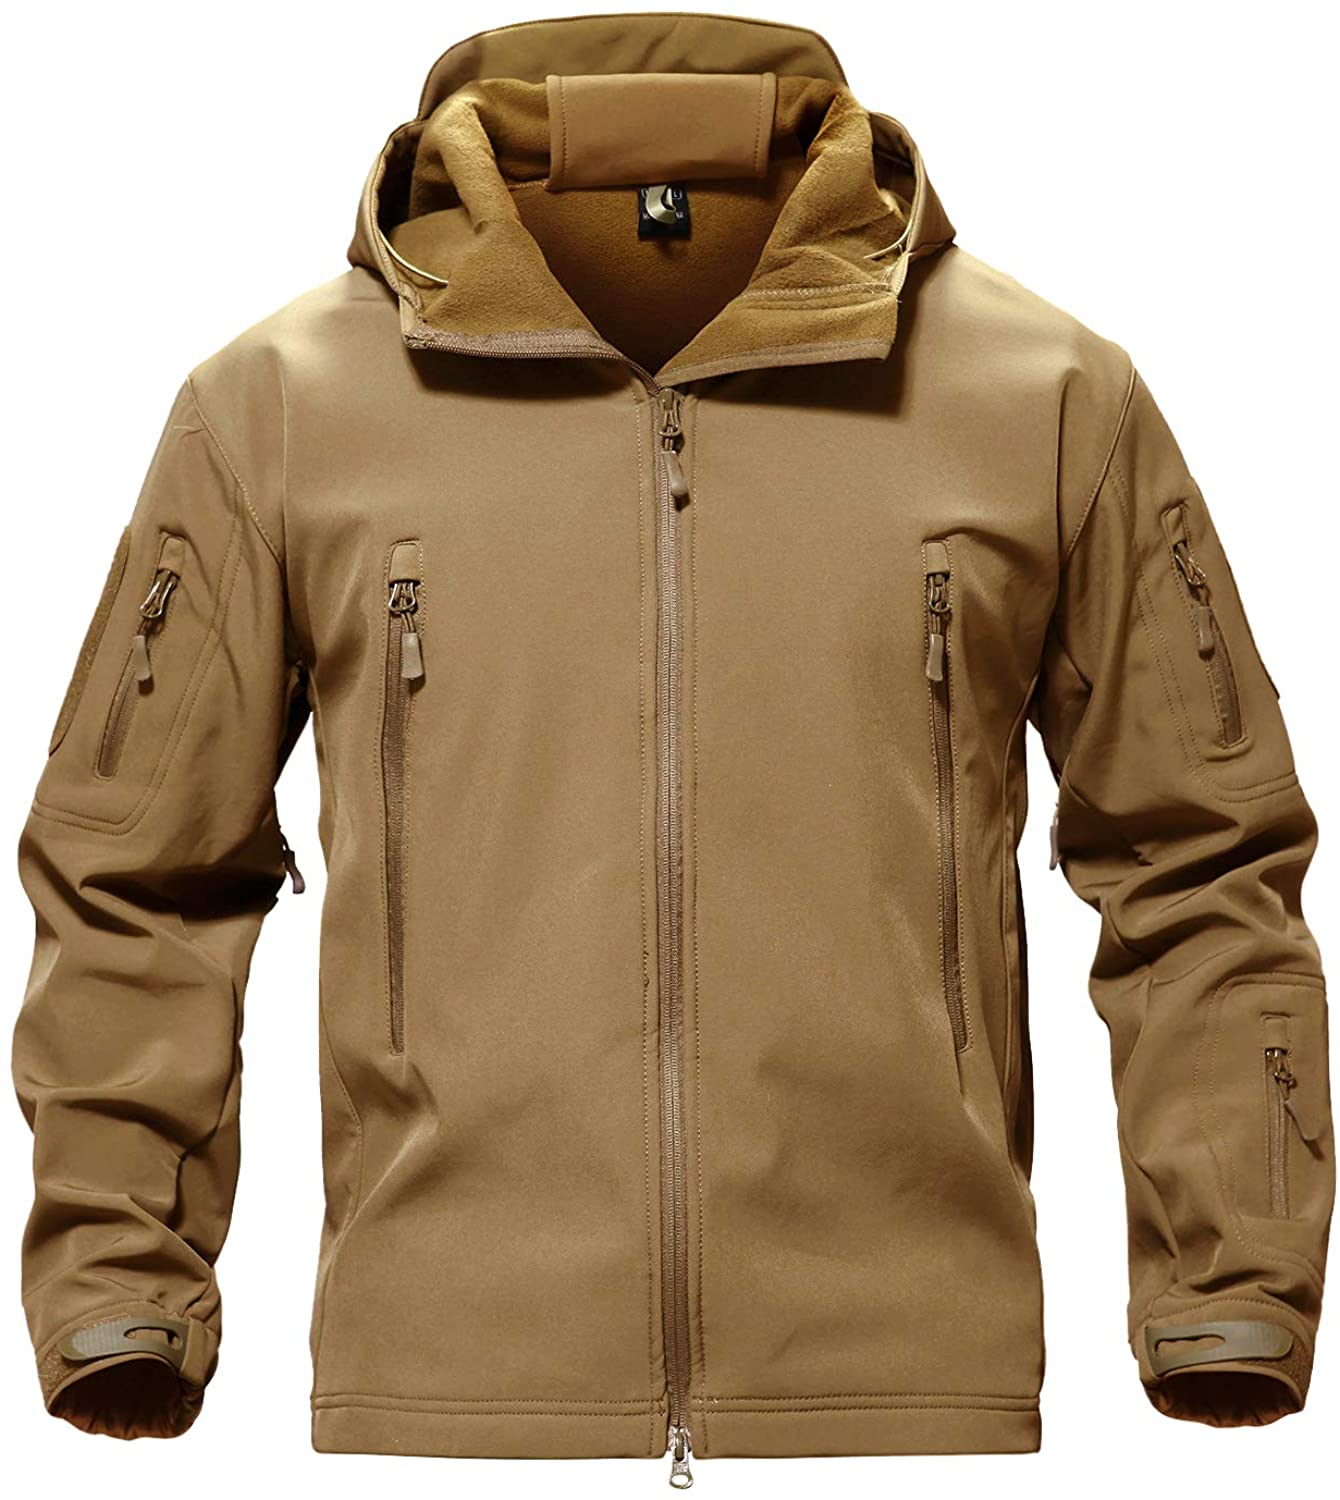 TACVASEN Men's Special Ops Military Shell Soft Jacket Max Max 76% OFF 46% OFF Tactical C